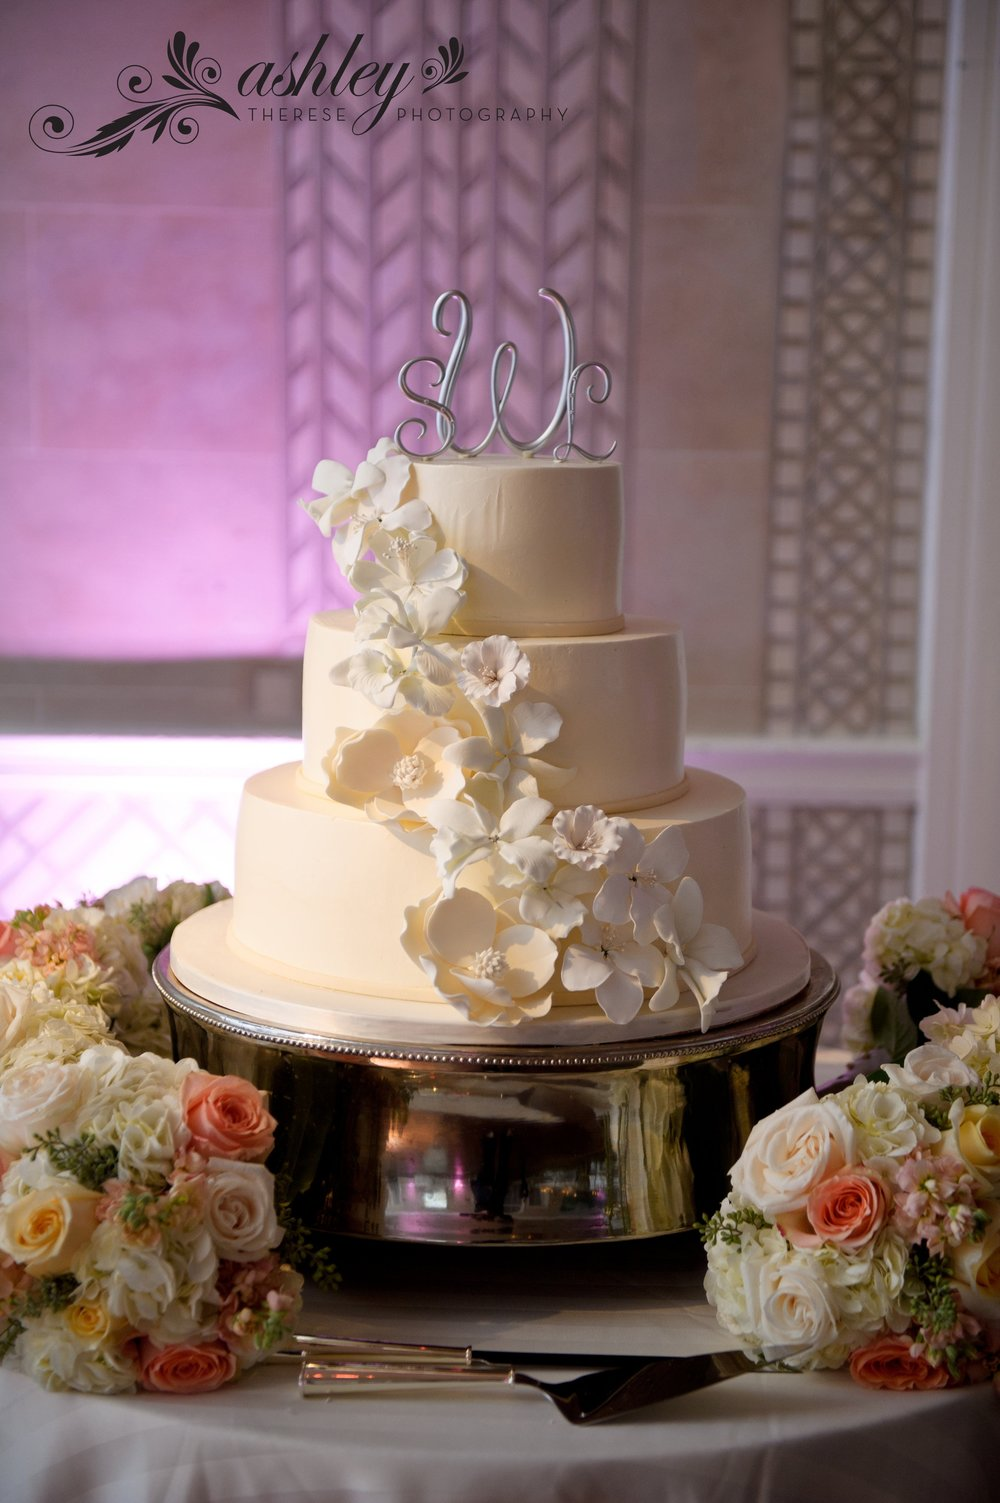 Ashley-Therese-Photography_CAKE_LOGO-1.jpg